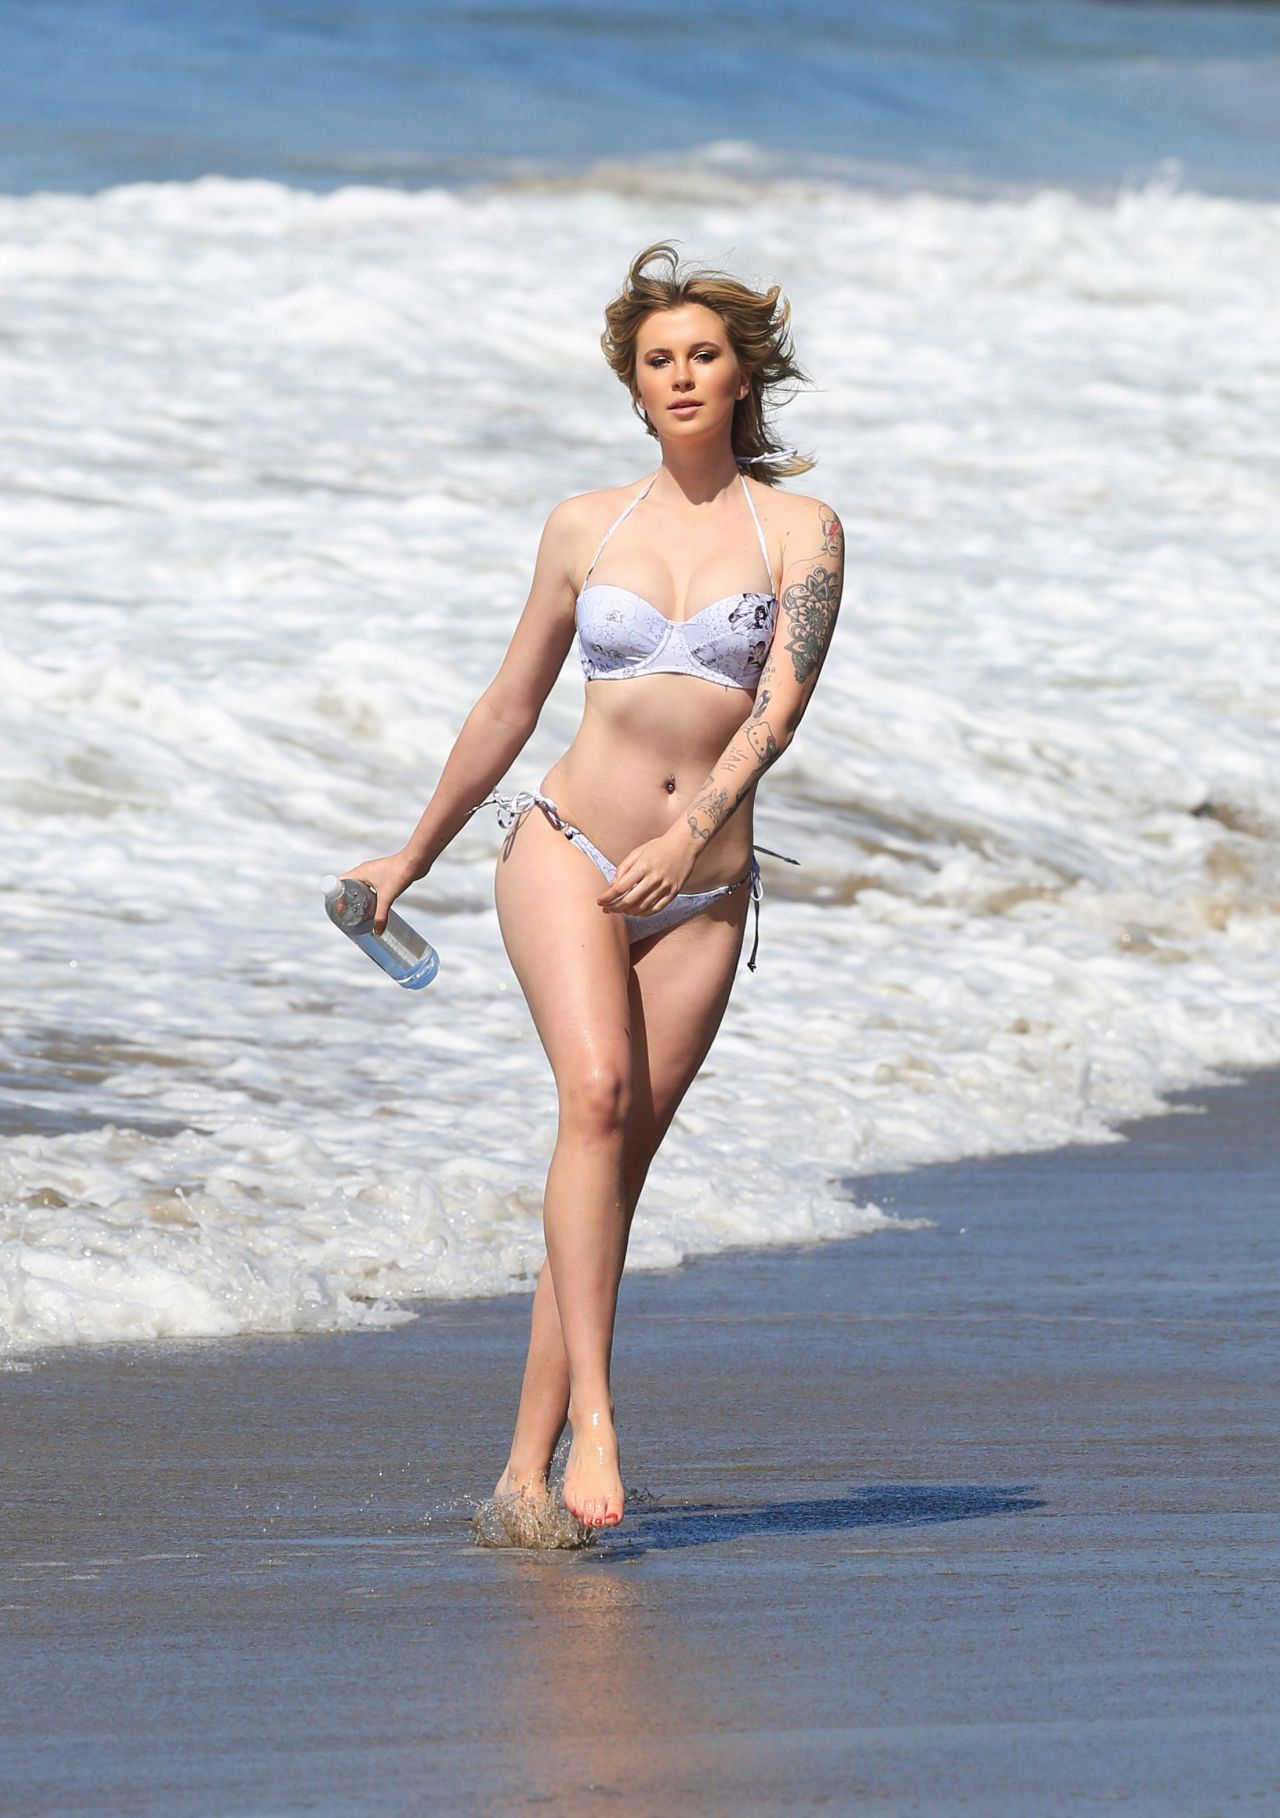 ireland baldwin bikini photoshoot for 138 water  27  2017